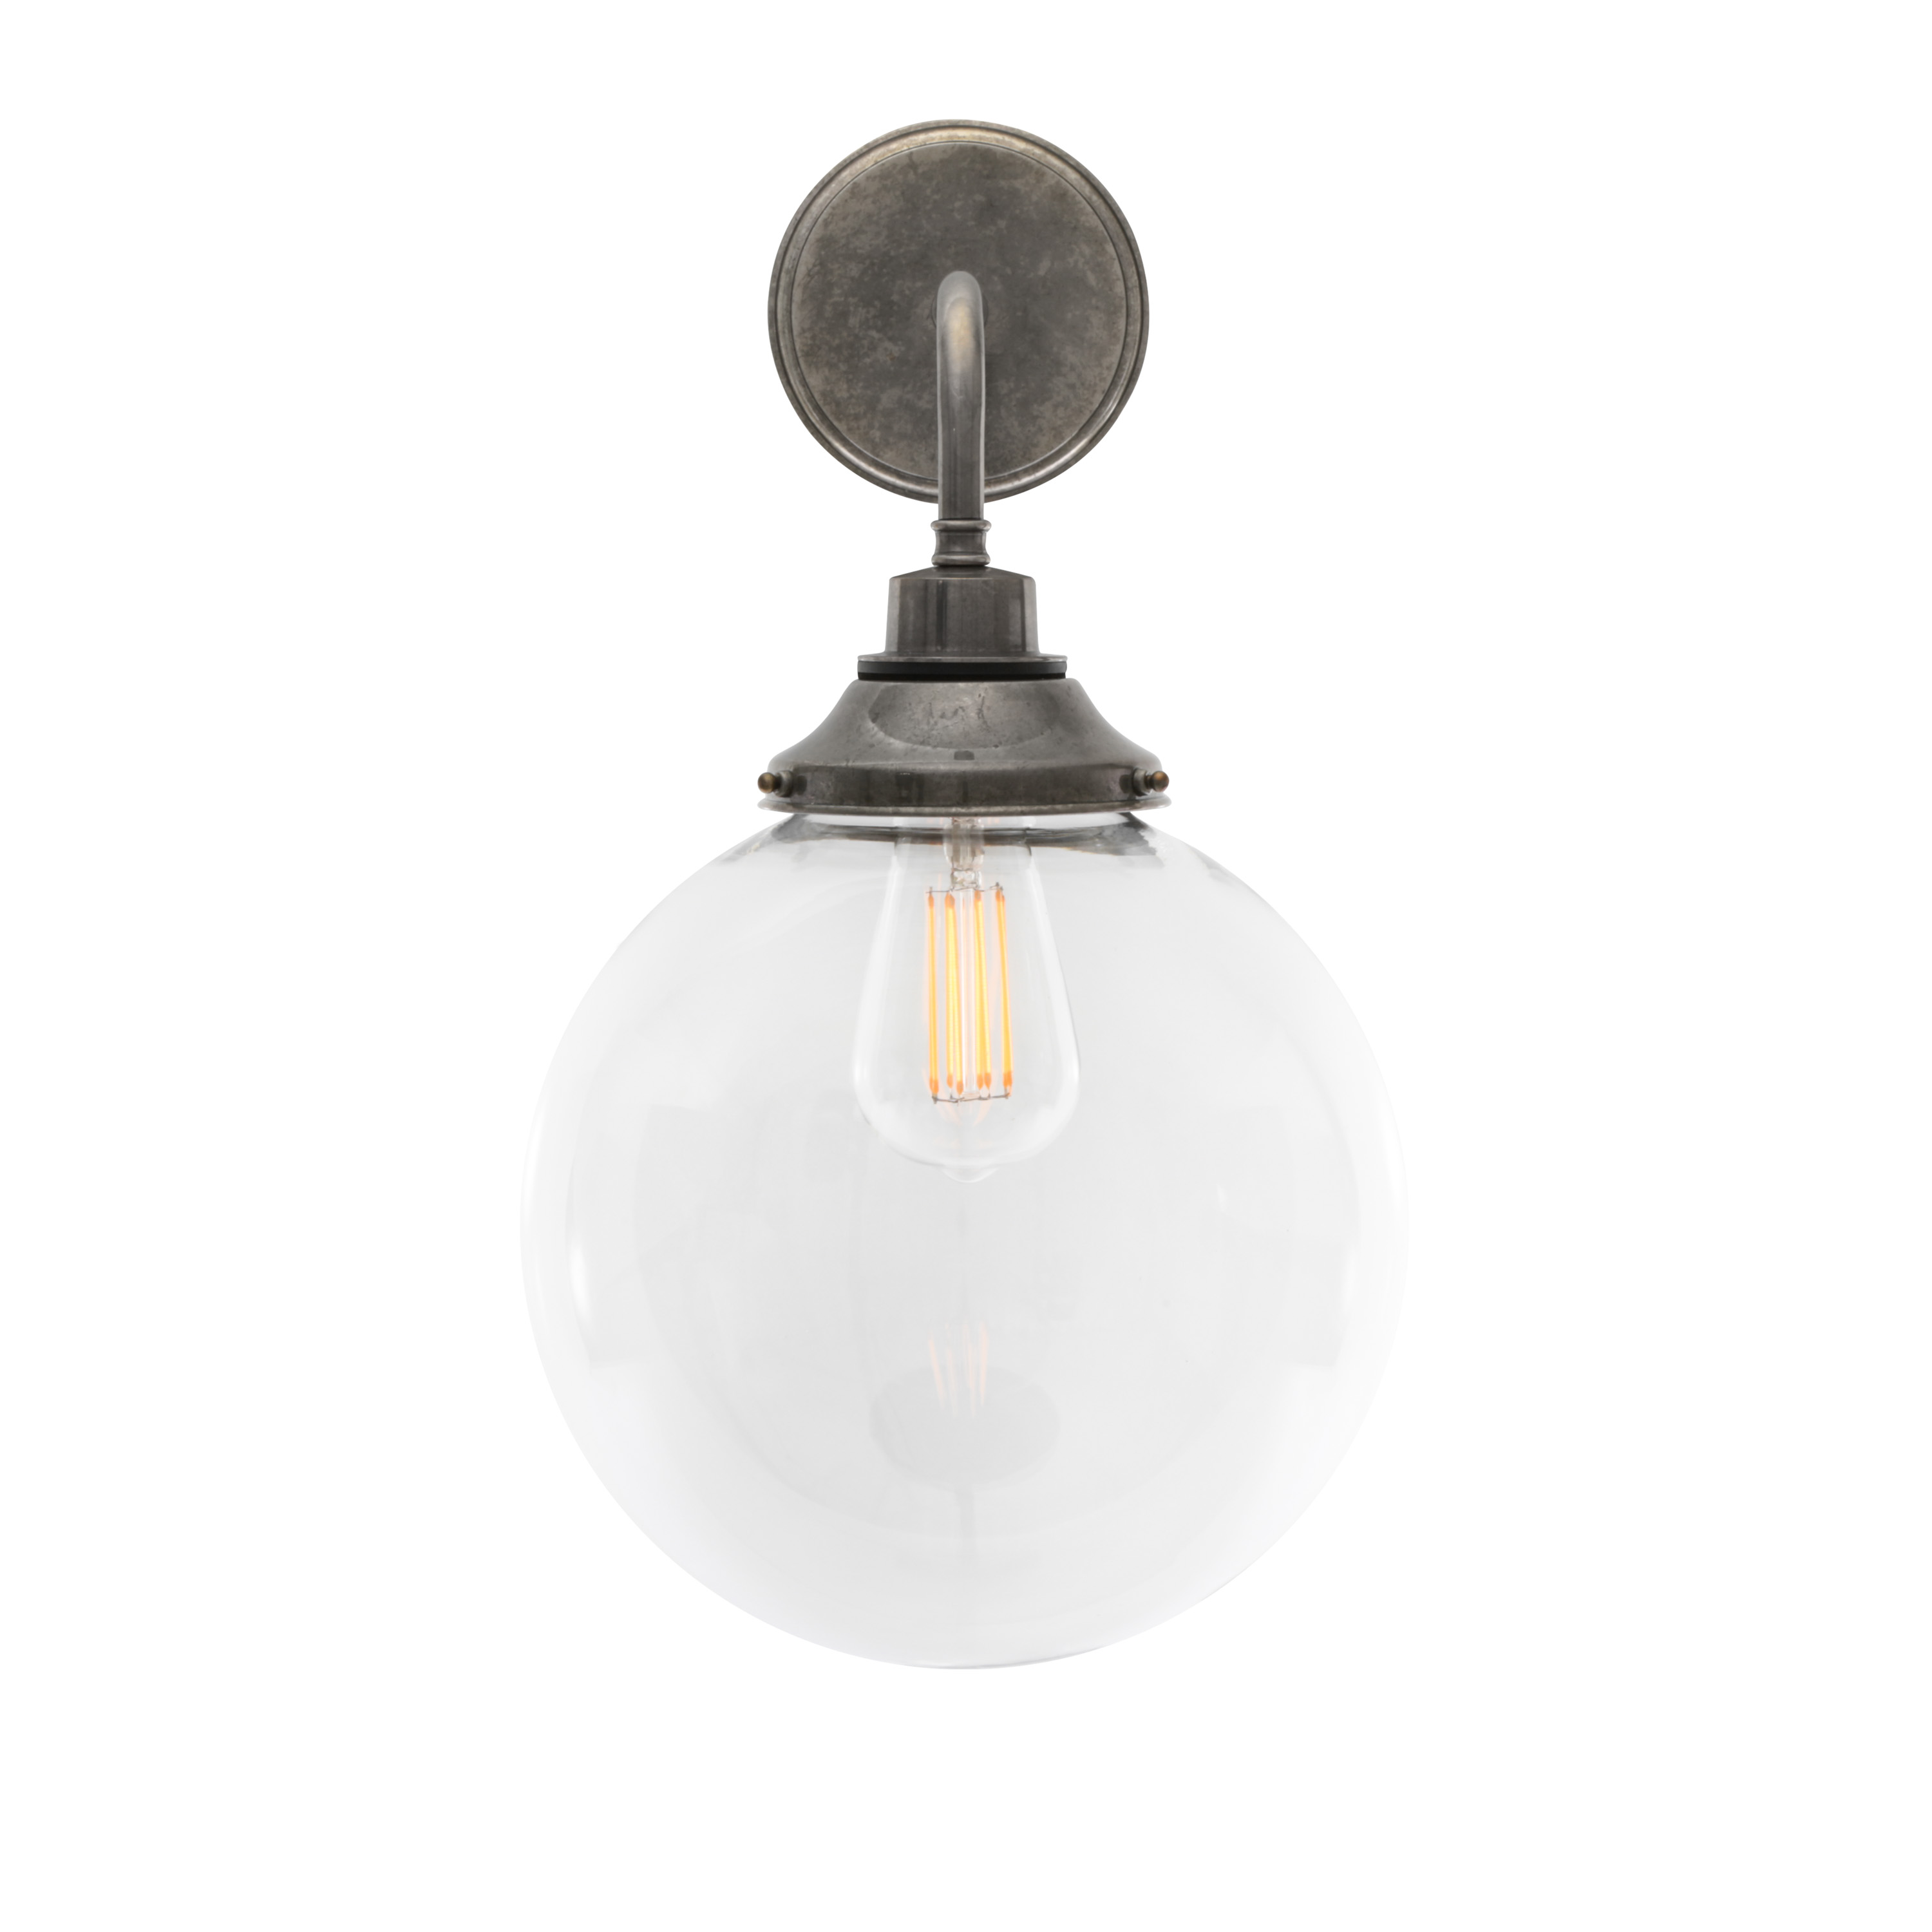 Laguna Bathroom Wall Light 25 cm IP44